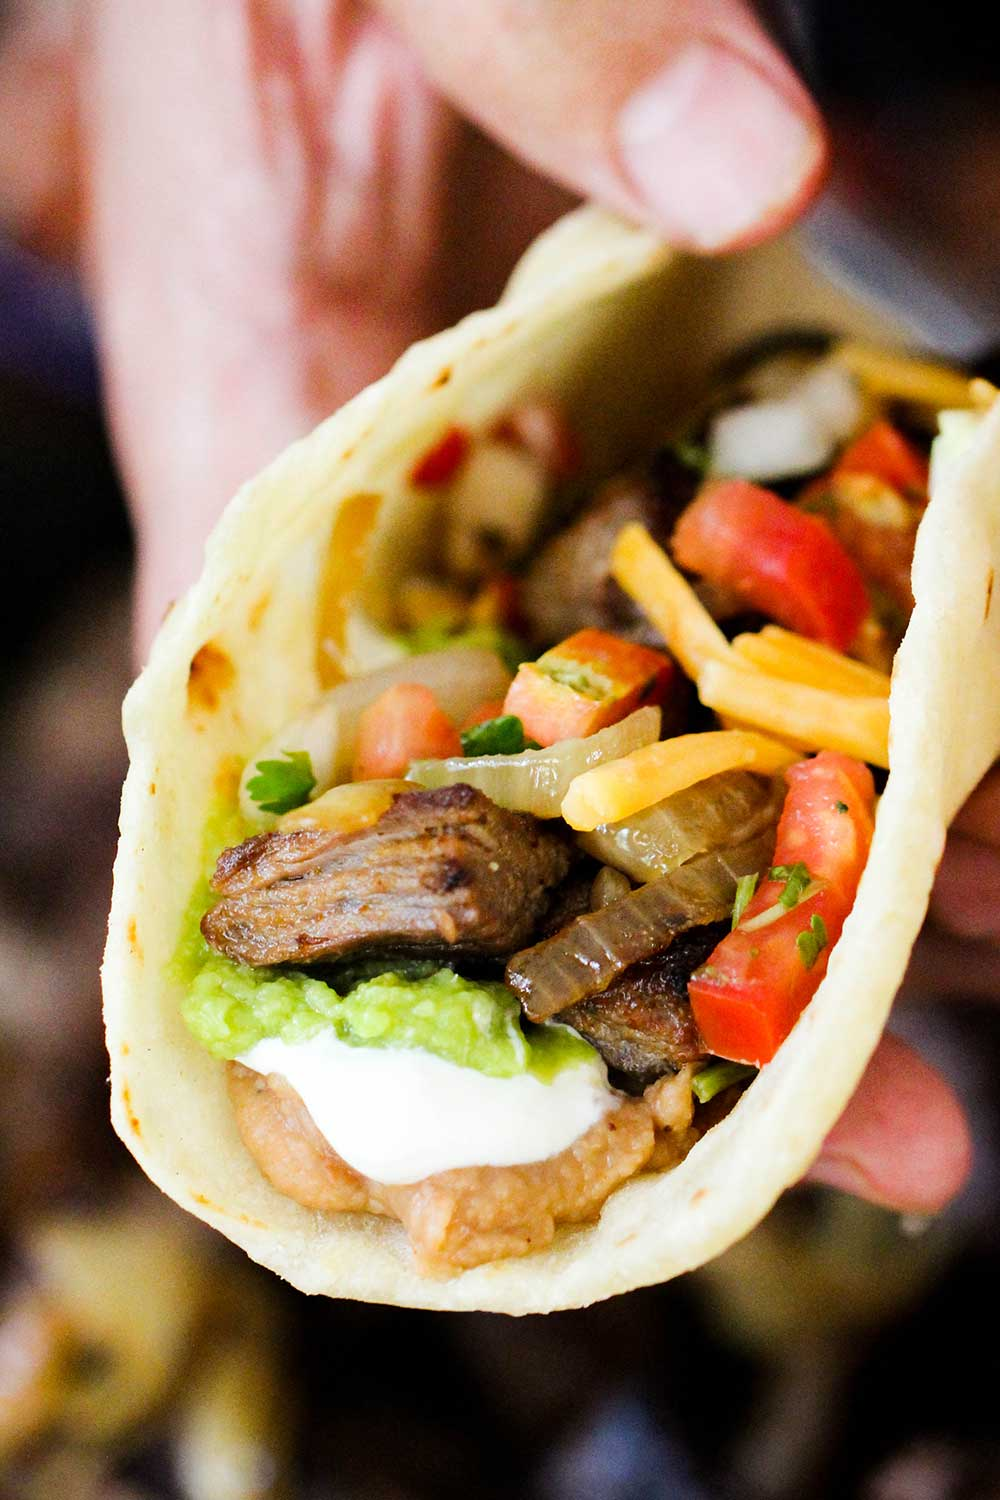 A hand holding an authentic steak fajita filled with beans, guacamole, sour cream, steak and pico de gallo.